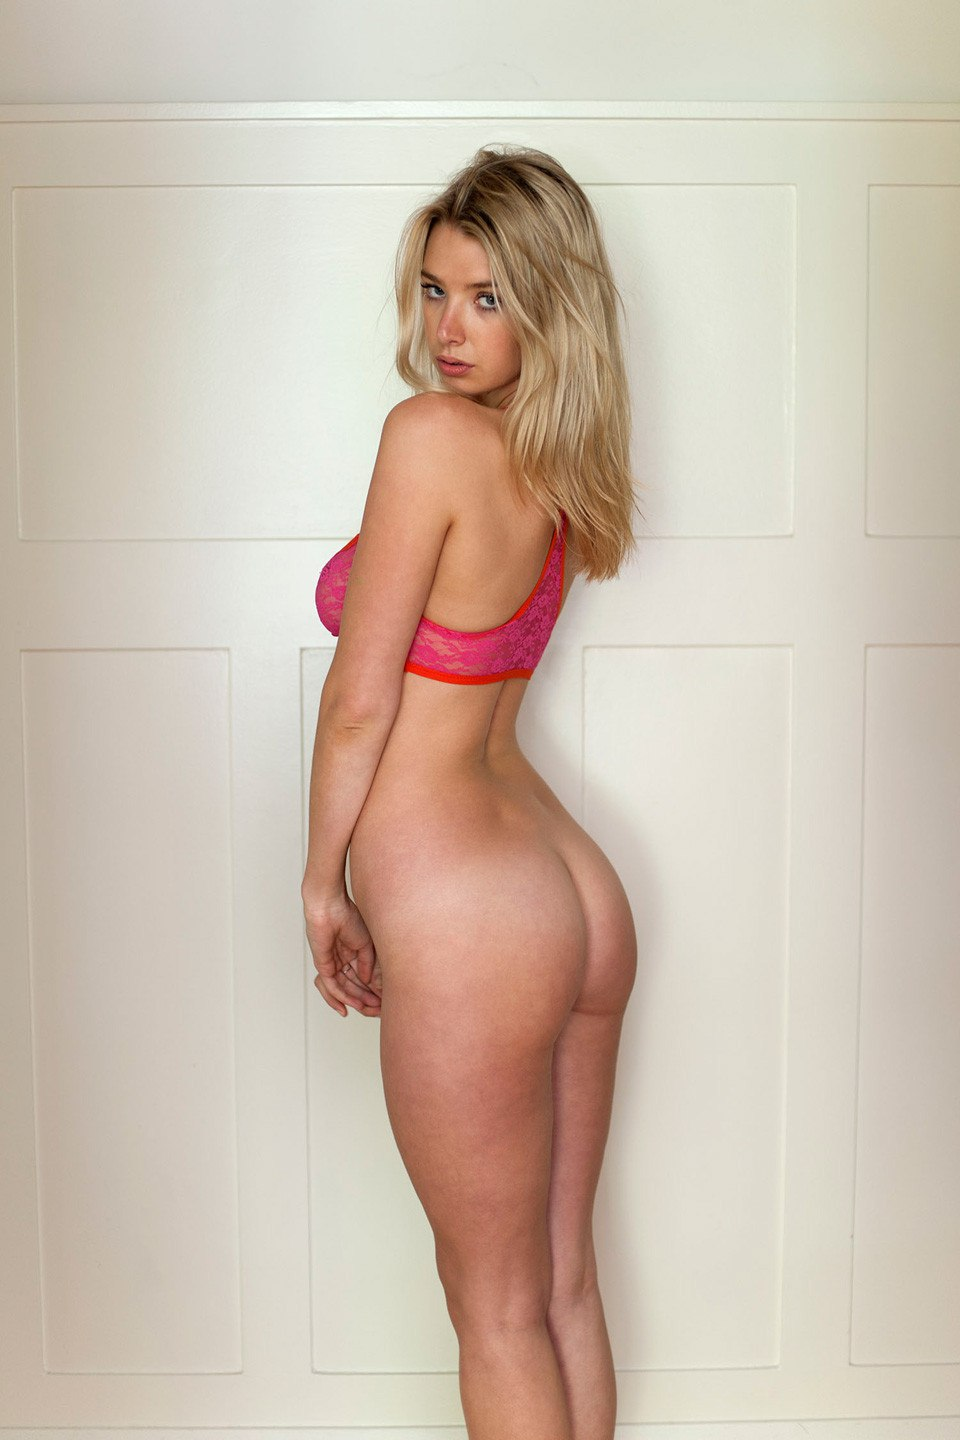 naked (13 photo), Fappening Celebrity fotos